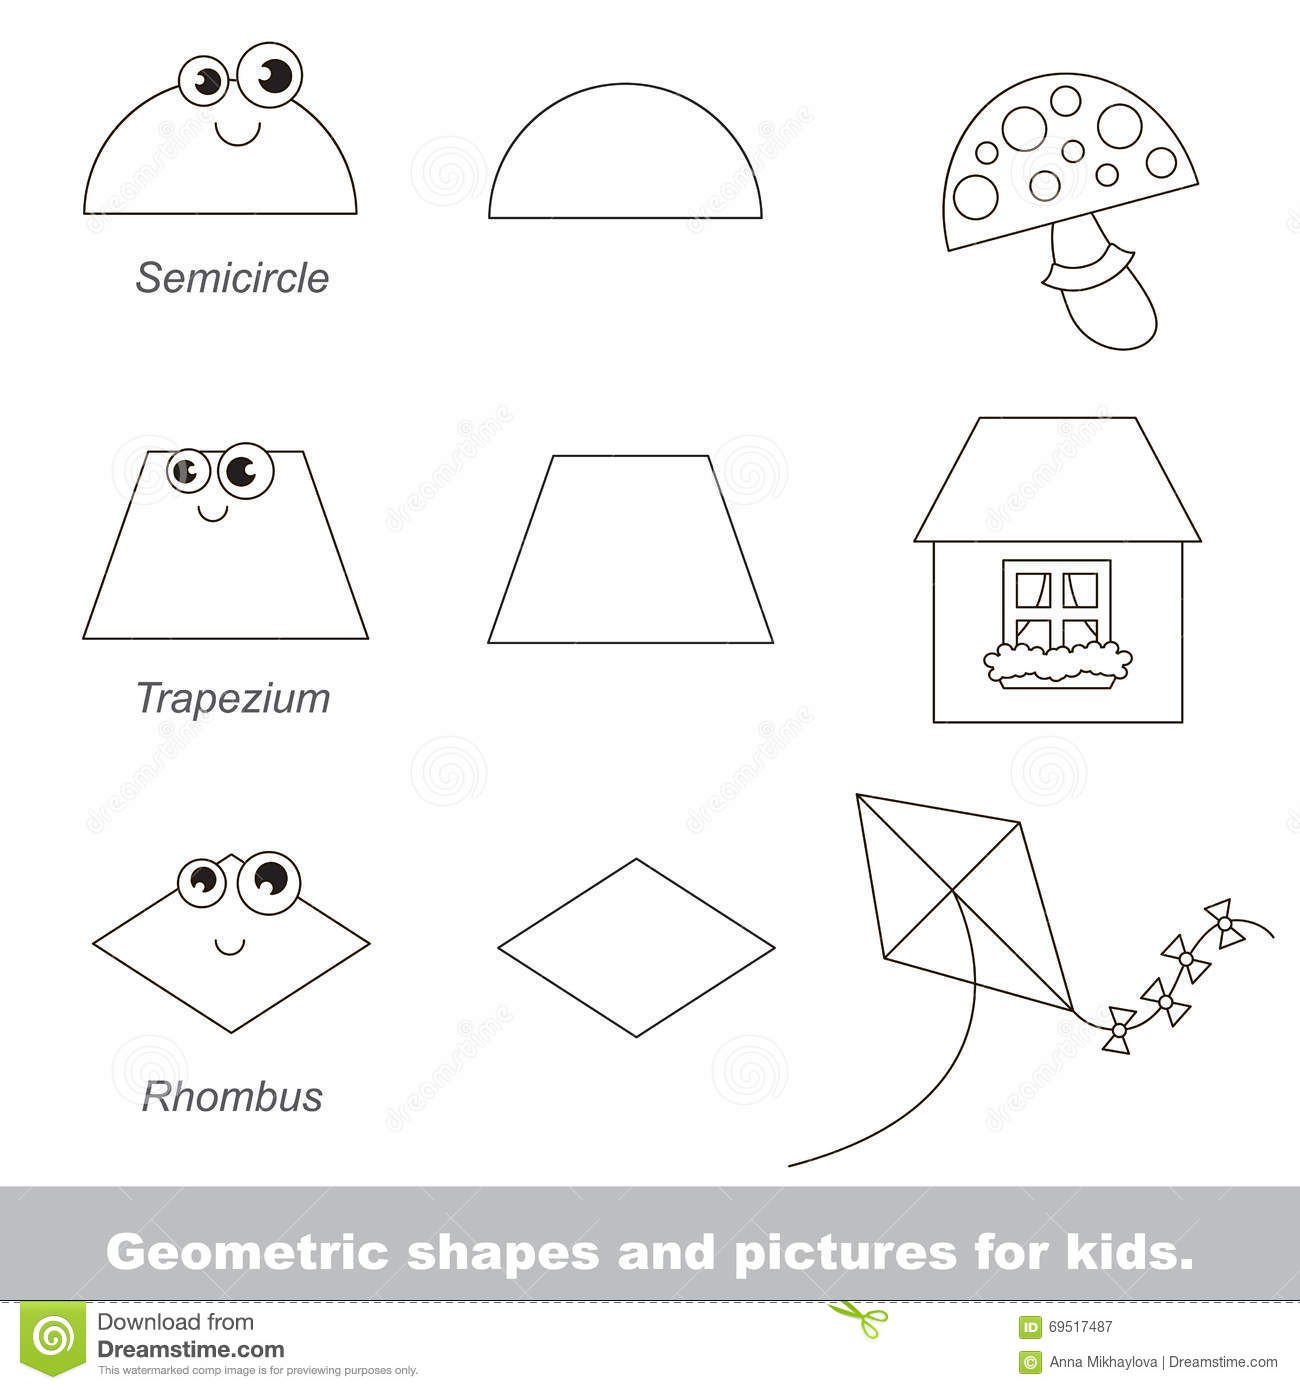 Counting Oval Shapes Worksheet